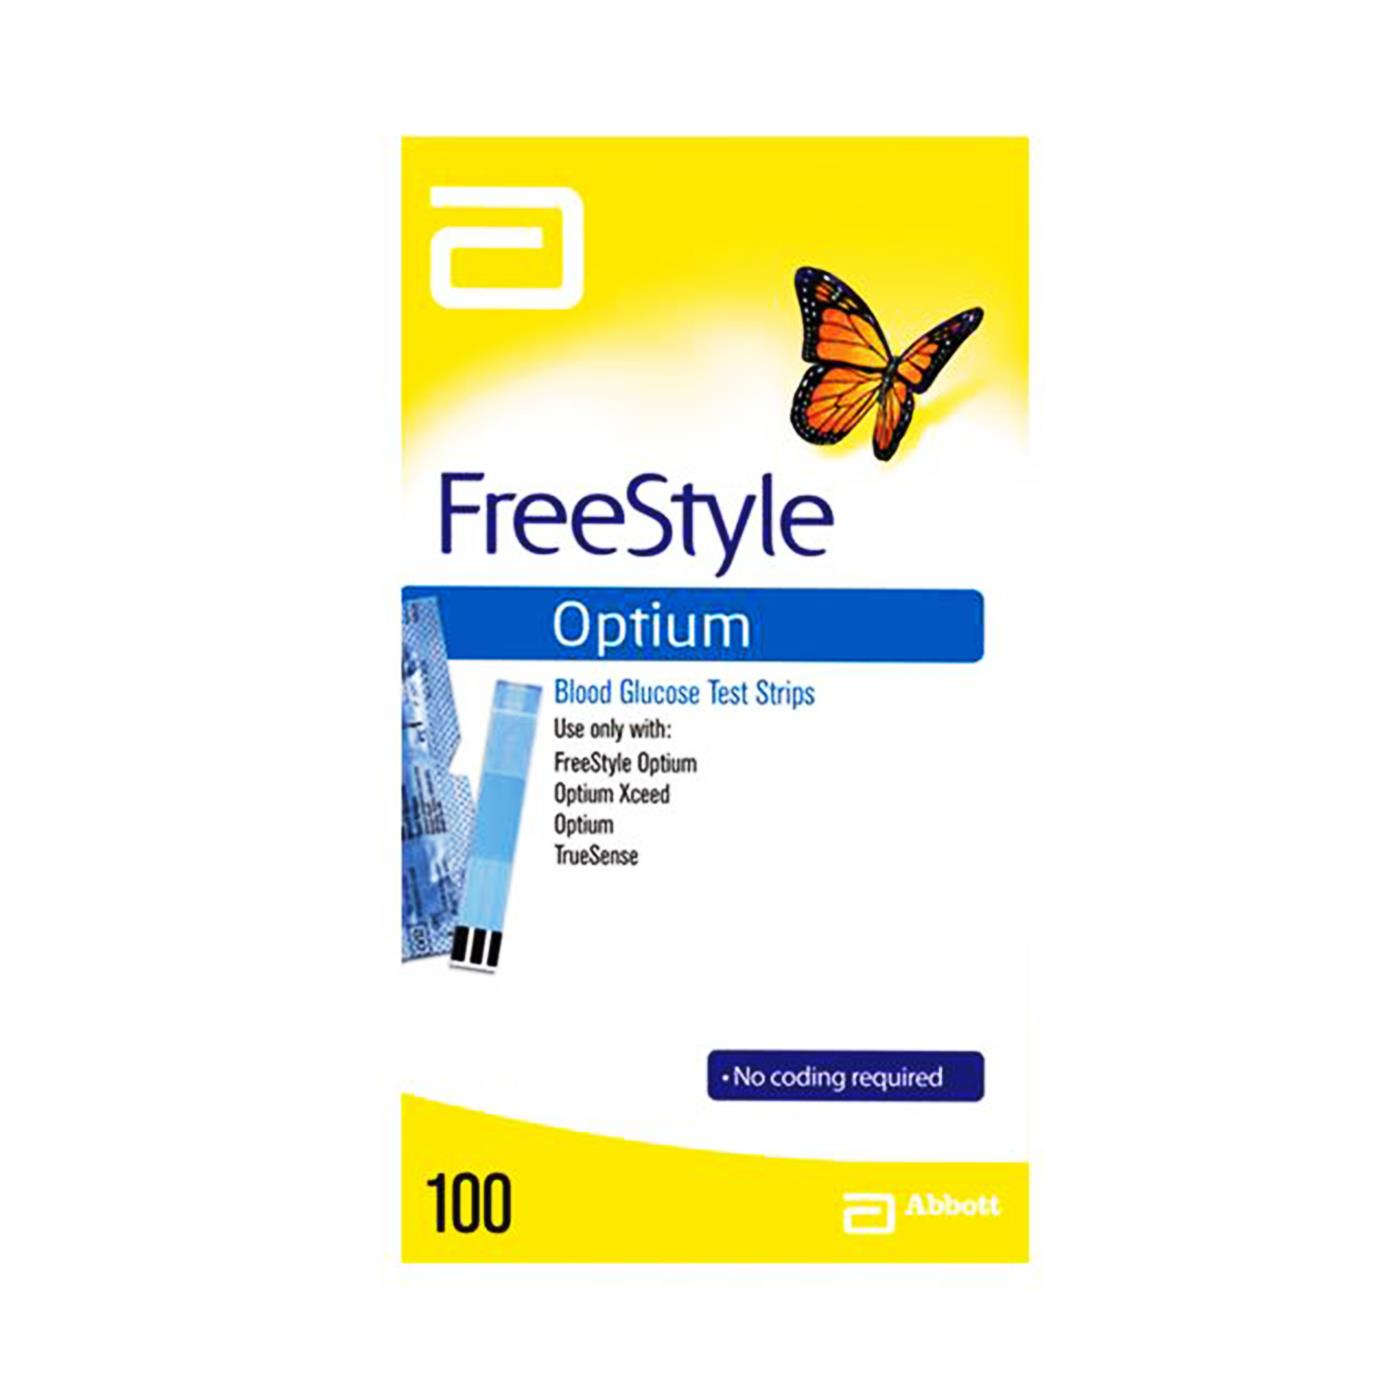 A 100PK Box Of Freestyle Optium Blood Glucose Test Strips